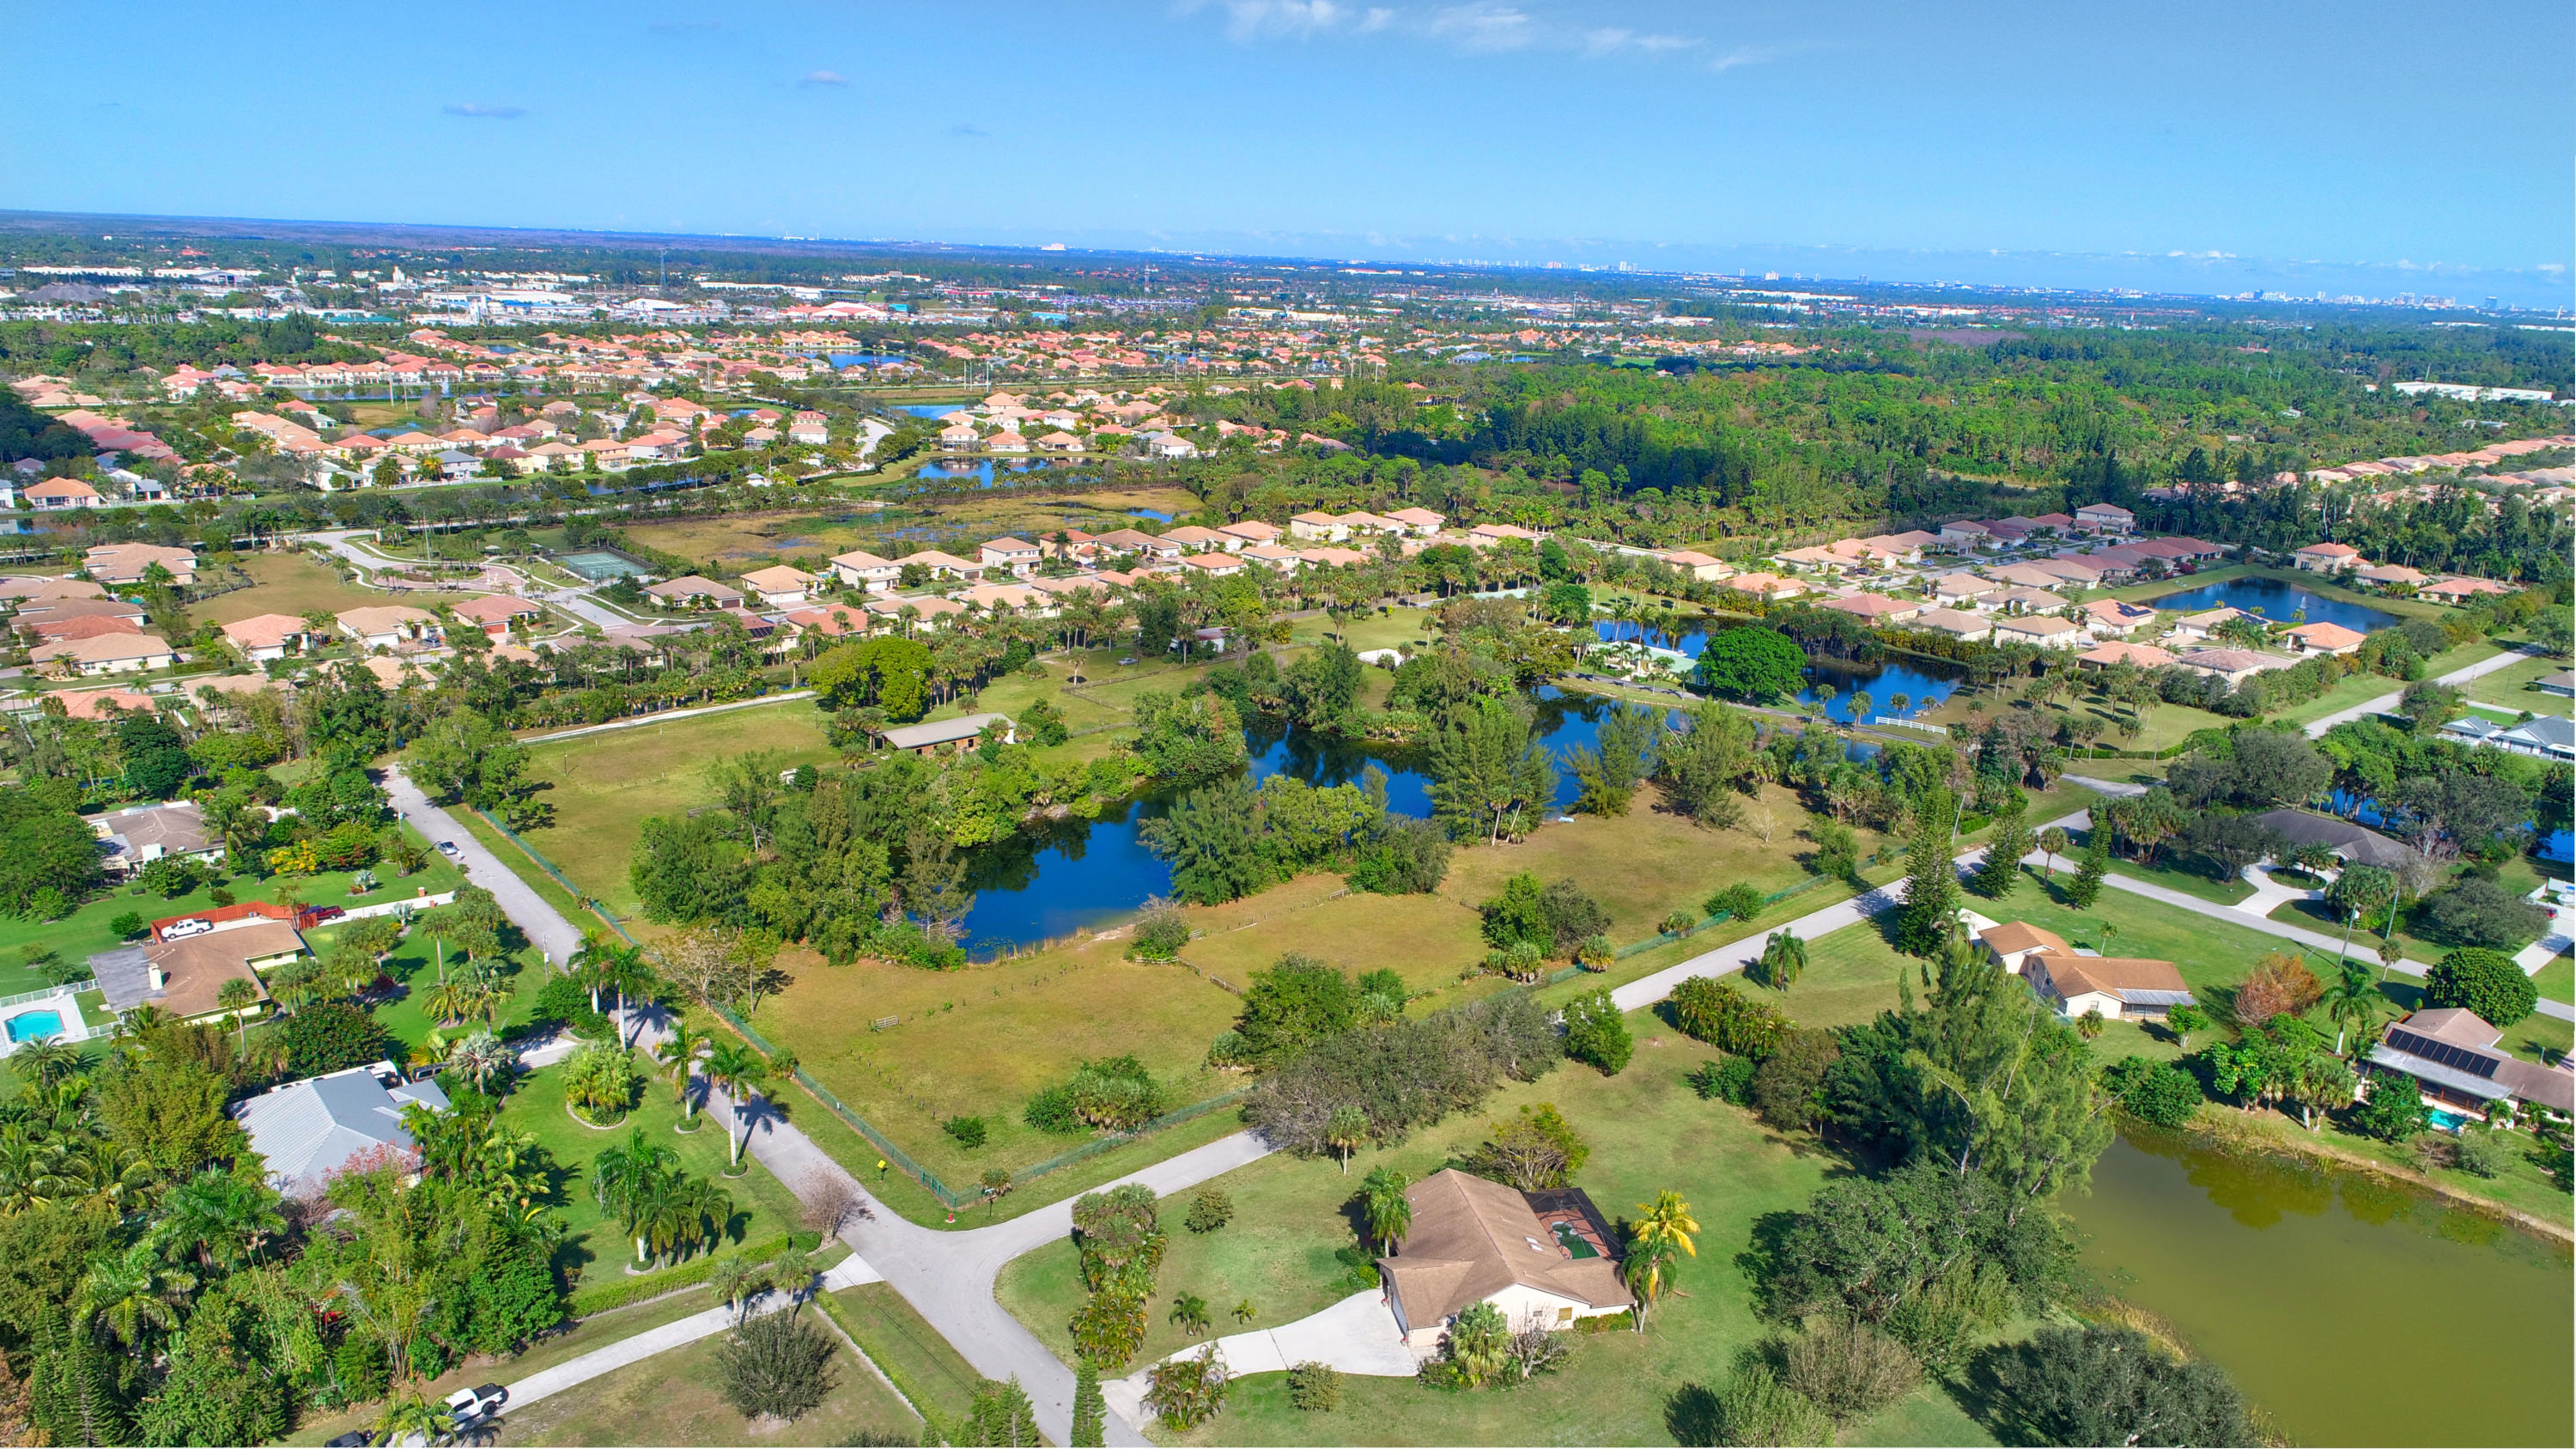 575 Whippoorwill Trail West Palm Beach, FL 33411 small photo 5